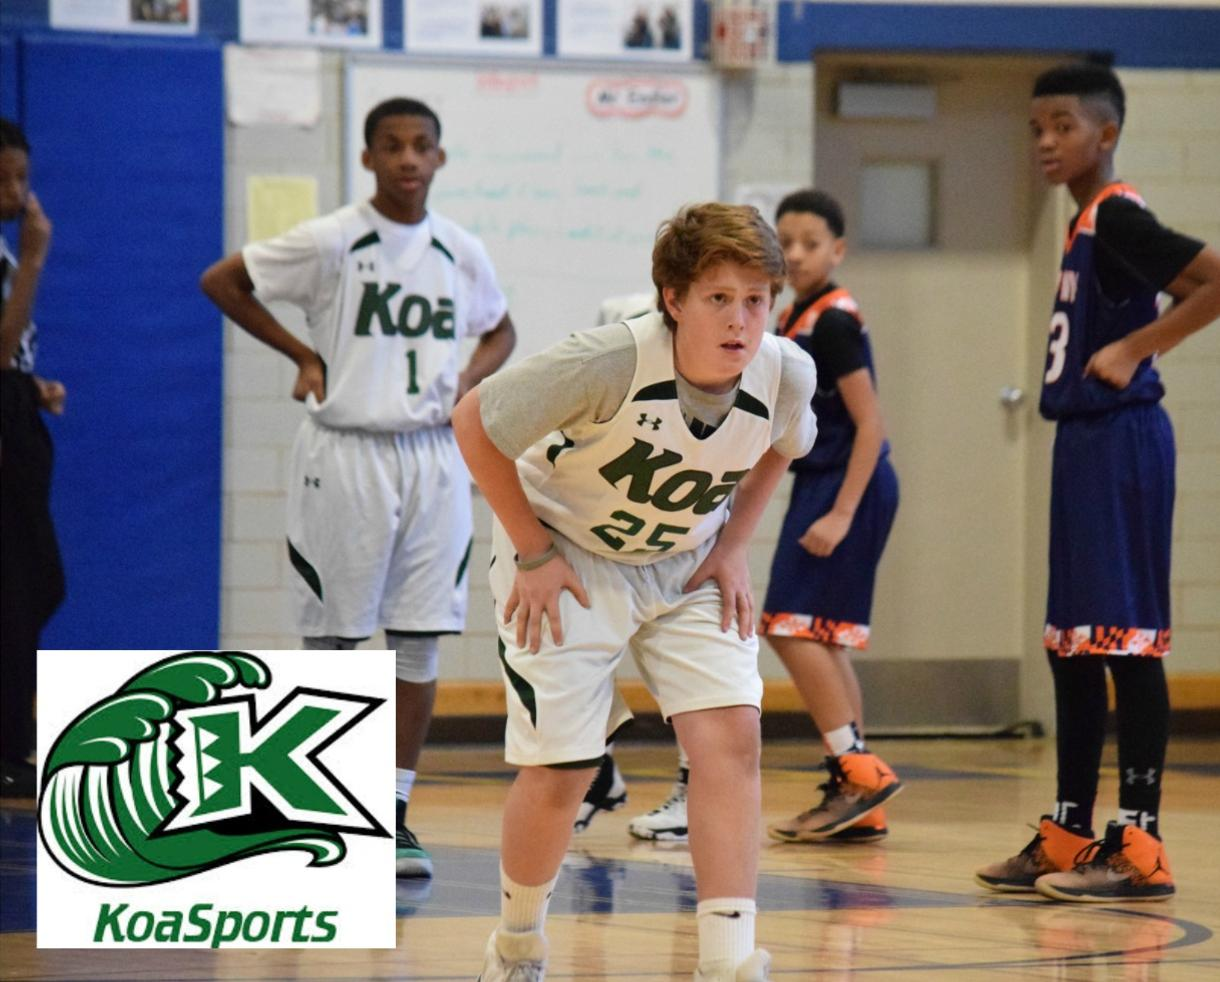 $300 for Basketball Skills Training 10-Pack of Lessons for 3rd-8th Graders at Koa Sports - Rockville (50% Off)